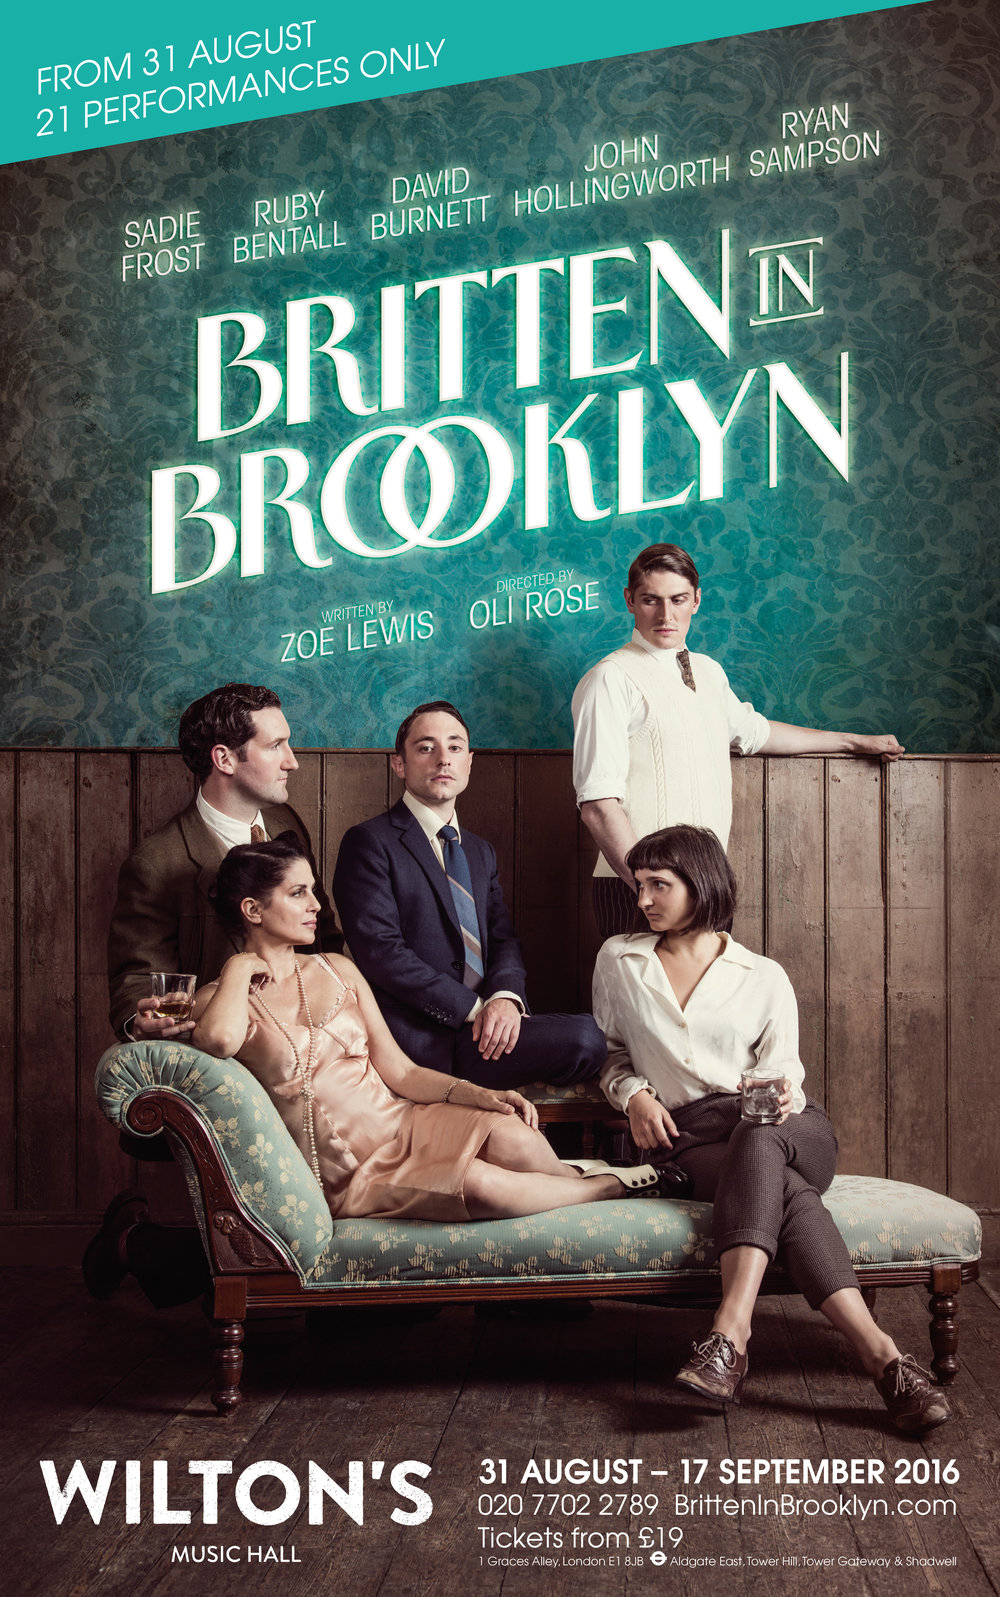 Britten In Brooklyn.jpg